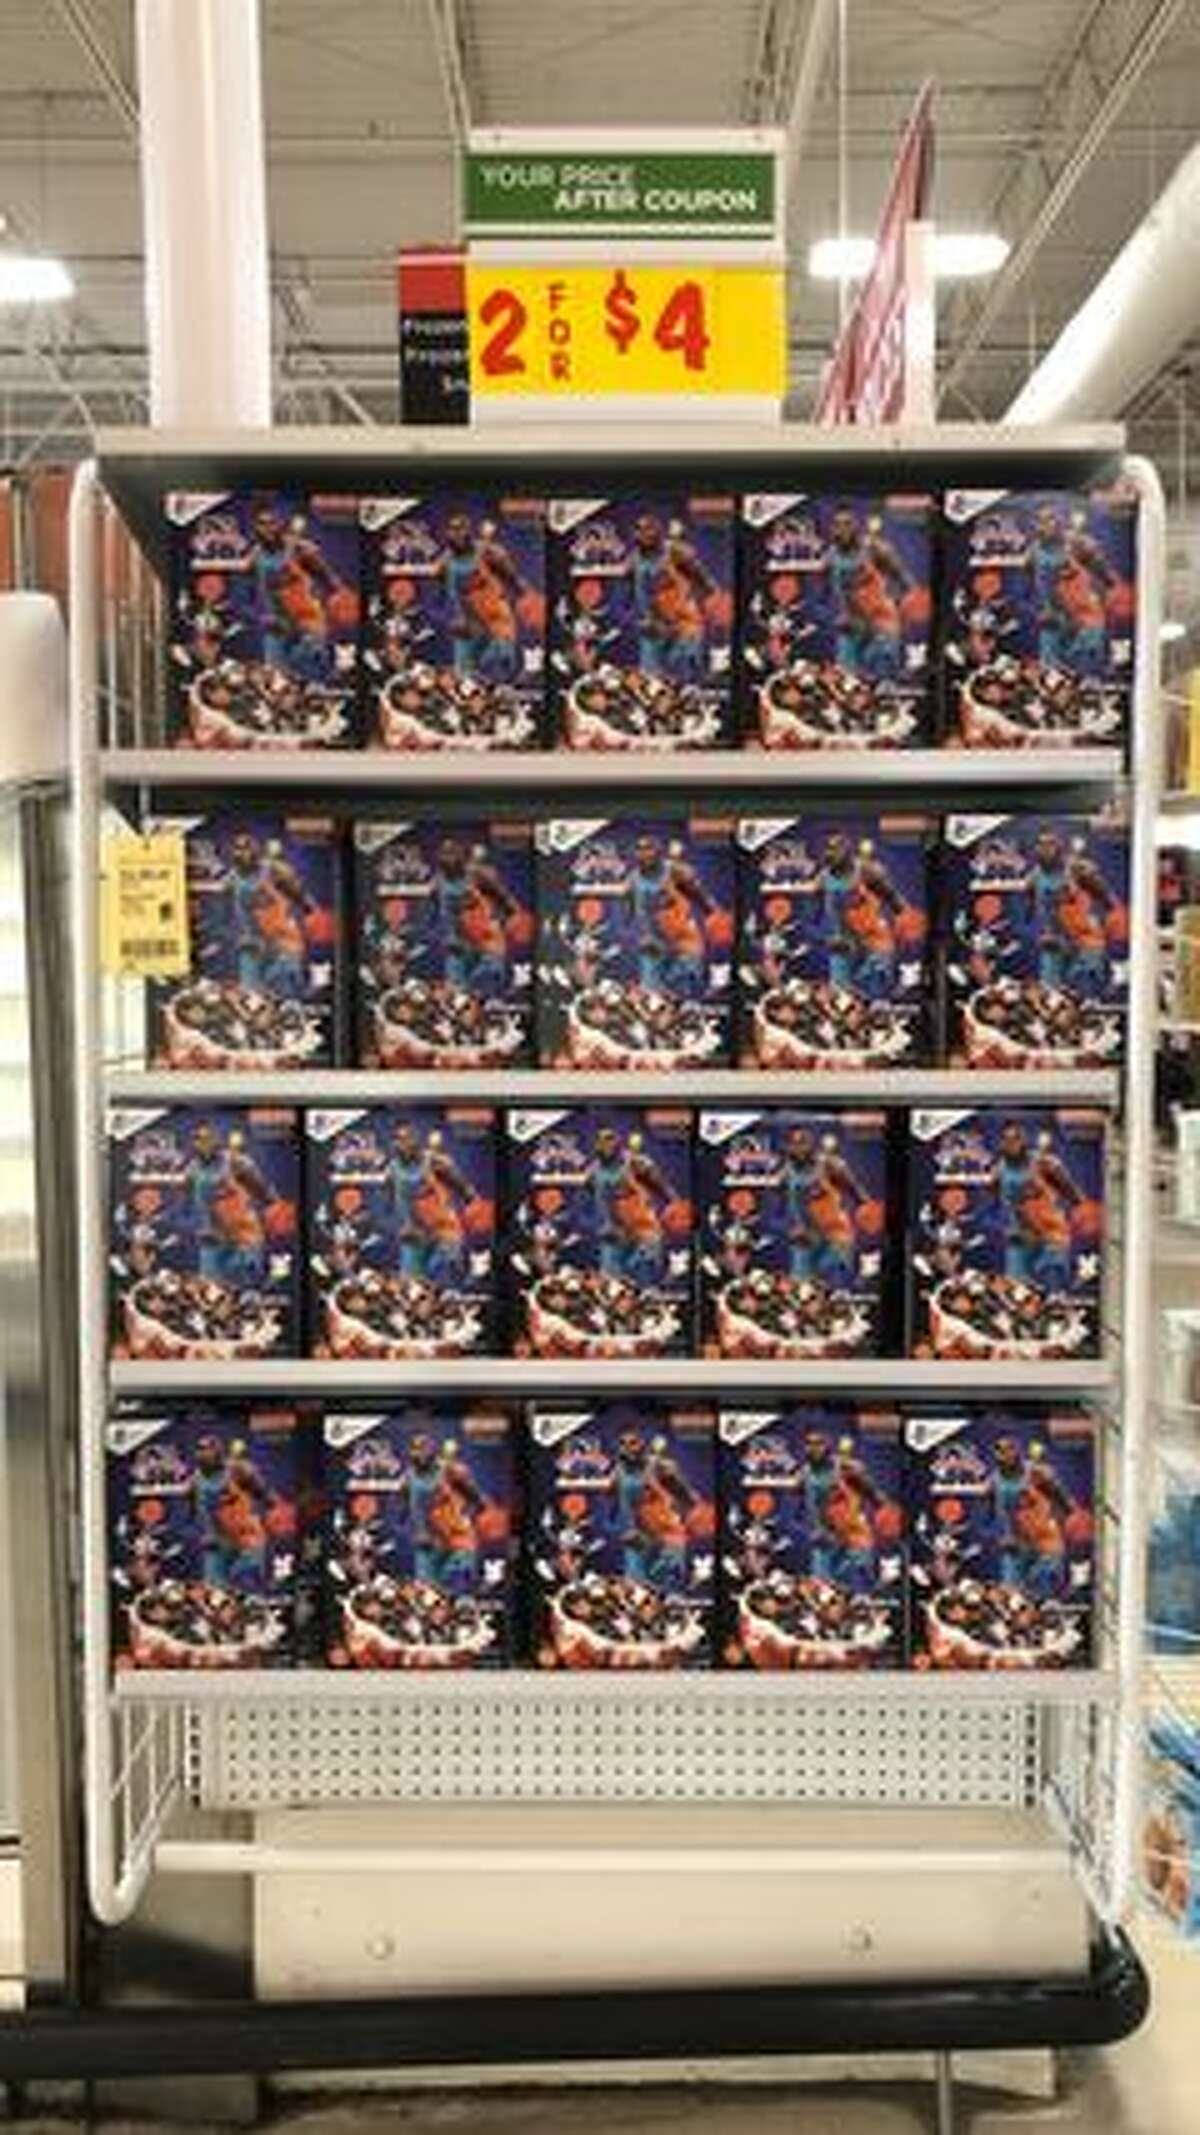 """The limited-edition """"Space Jam: A New Legacy"""" cereal box from national brand General Mills is now on sale at H-E-B stores across Texas, the grocery chain confirmed to MySA."""